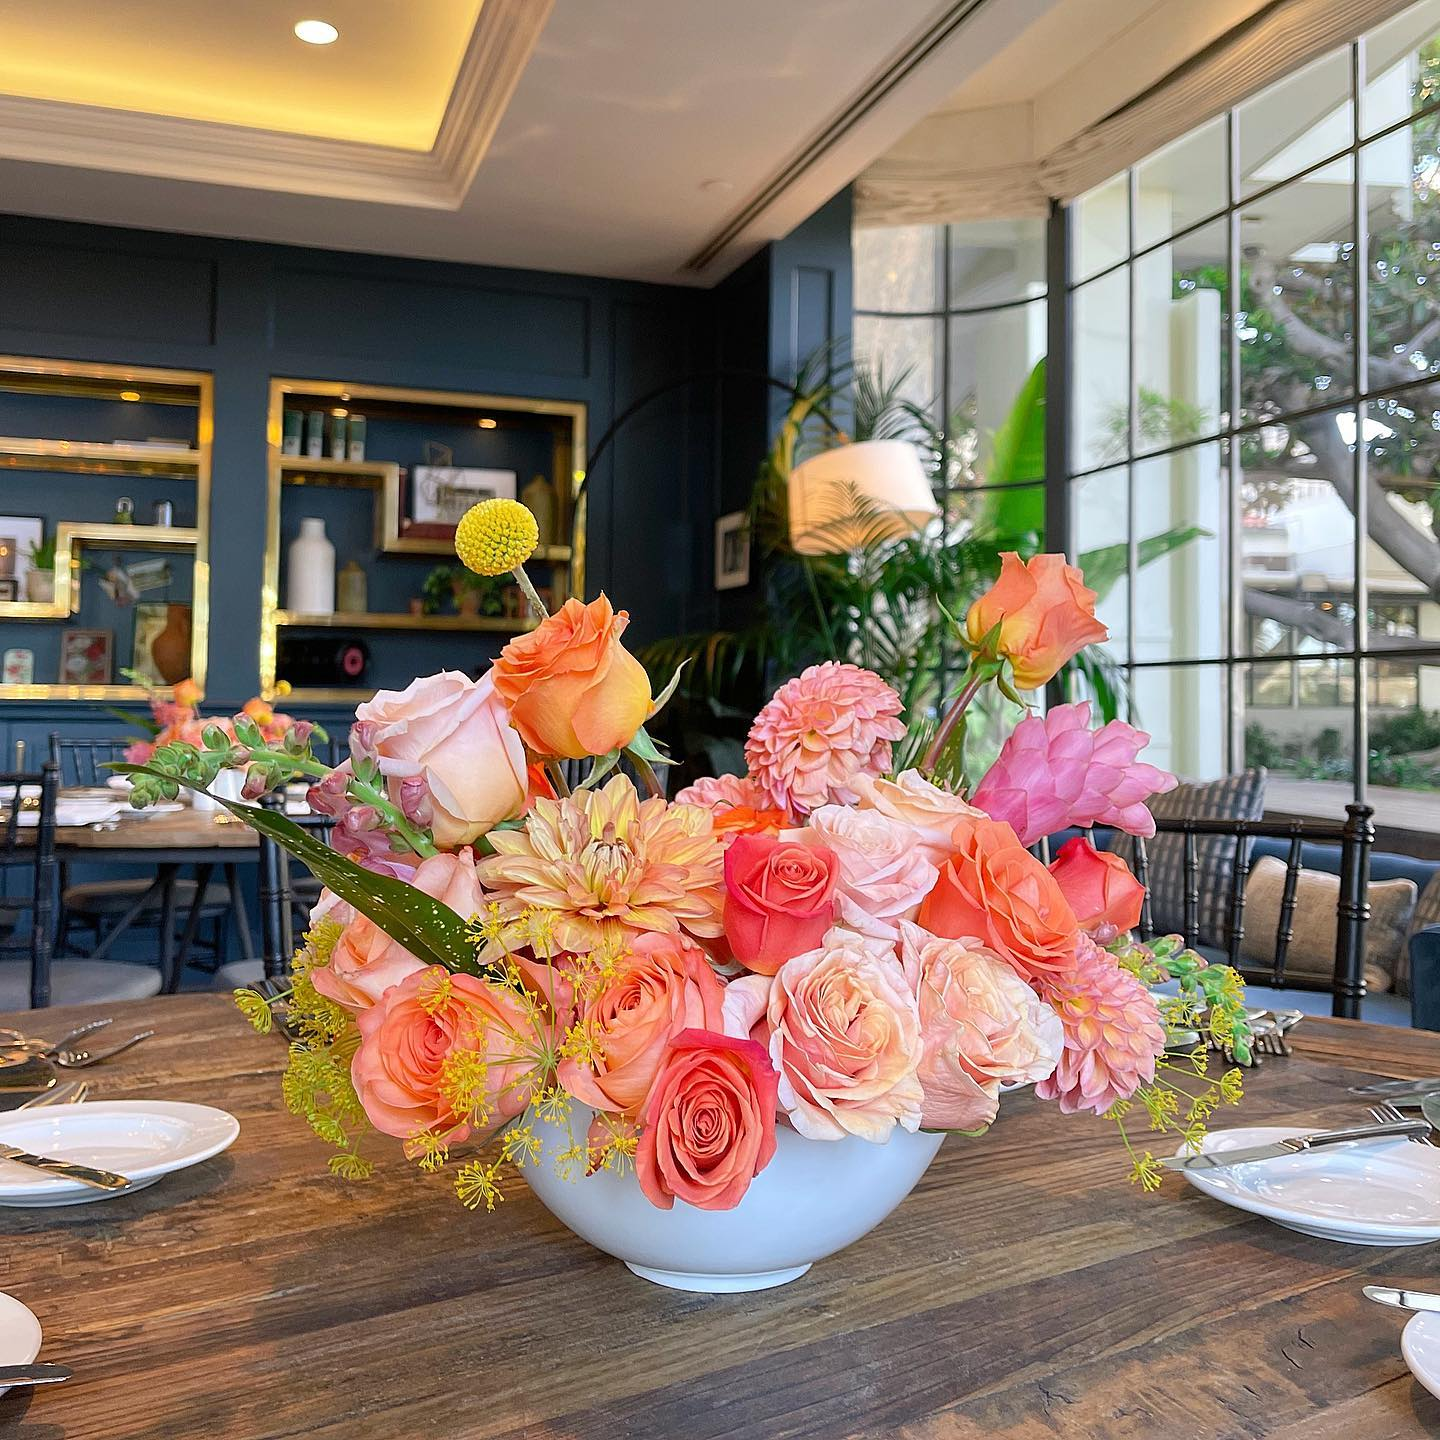 Table Arrangements for a private event at the Fairmont Miramar in Santa Monica, Ca